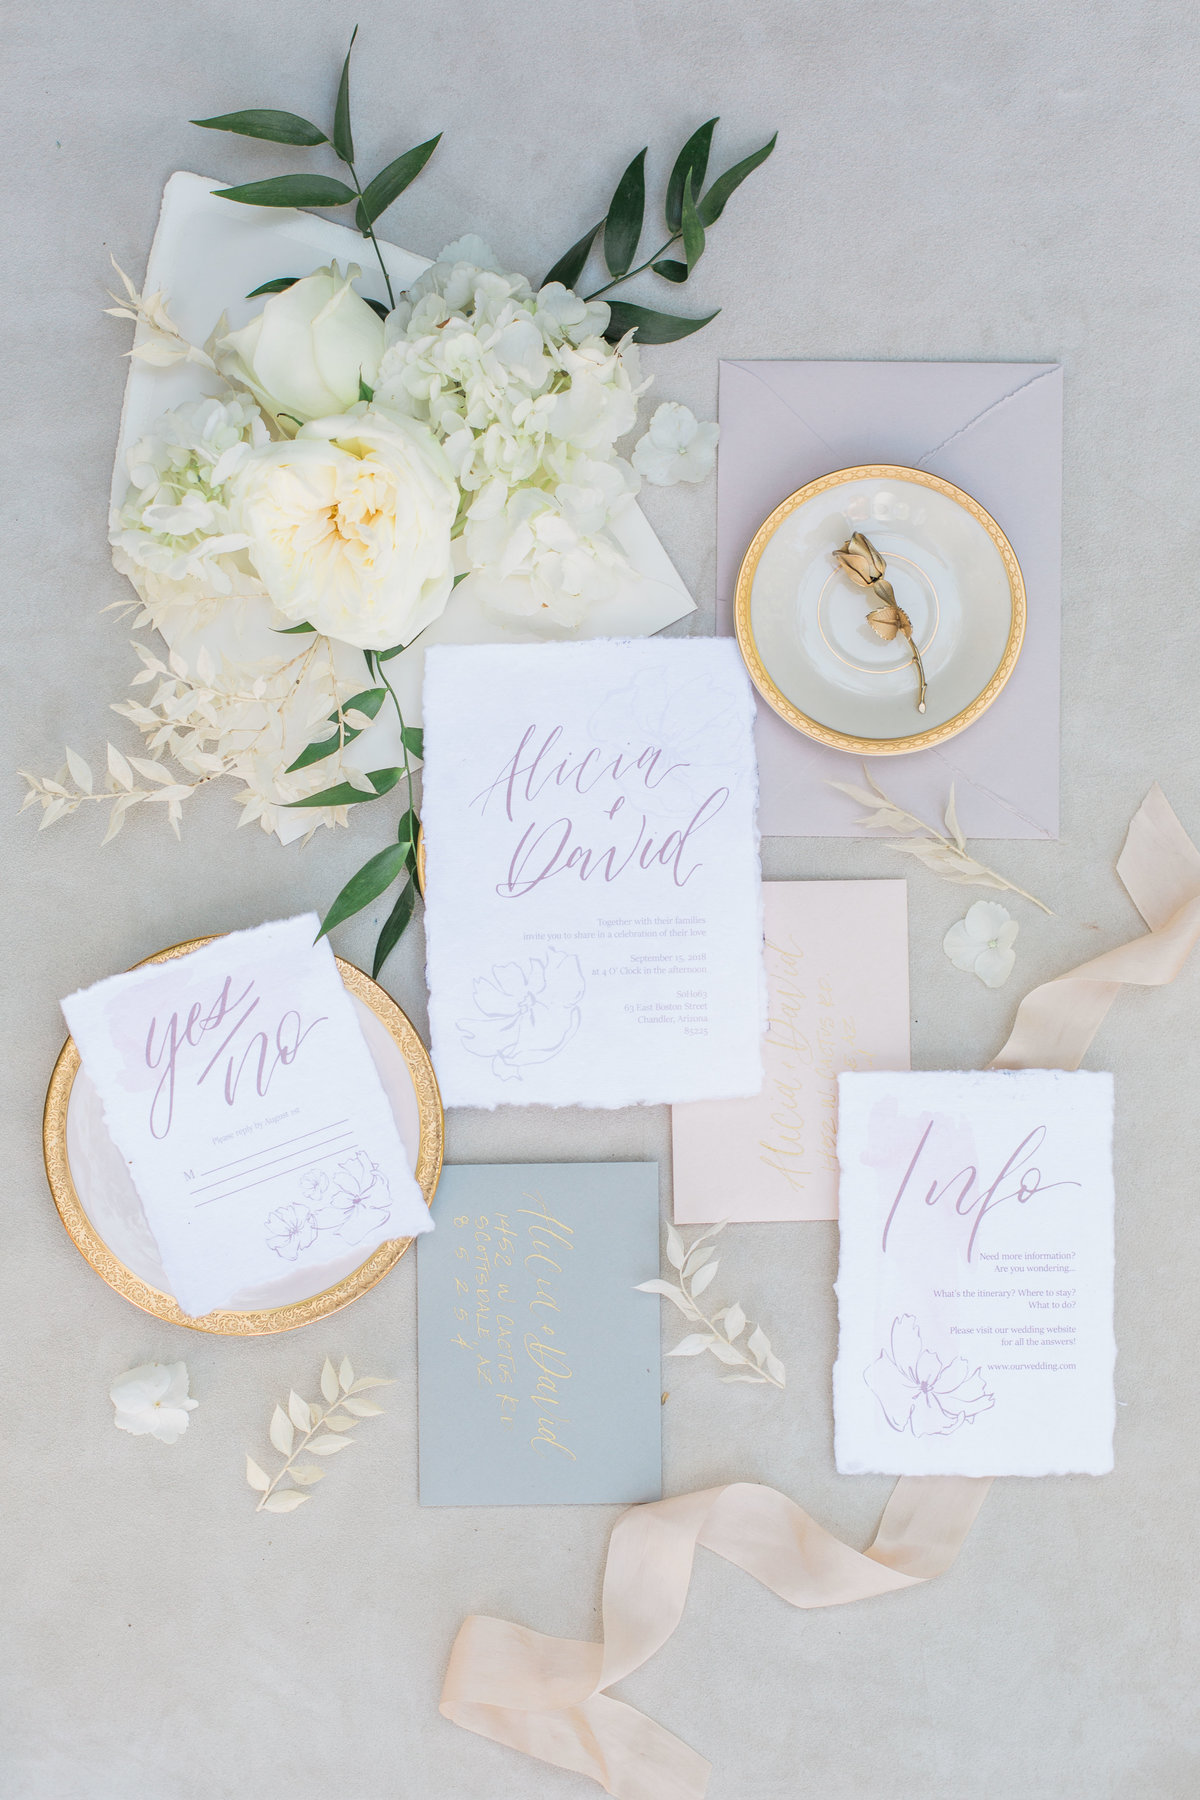 invitation suite and wedding details